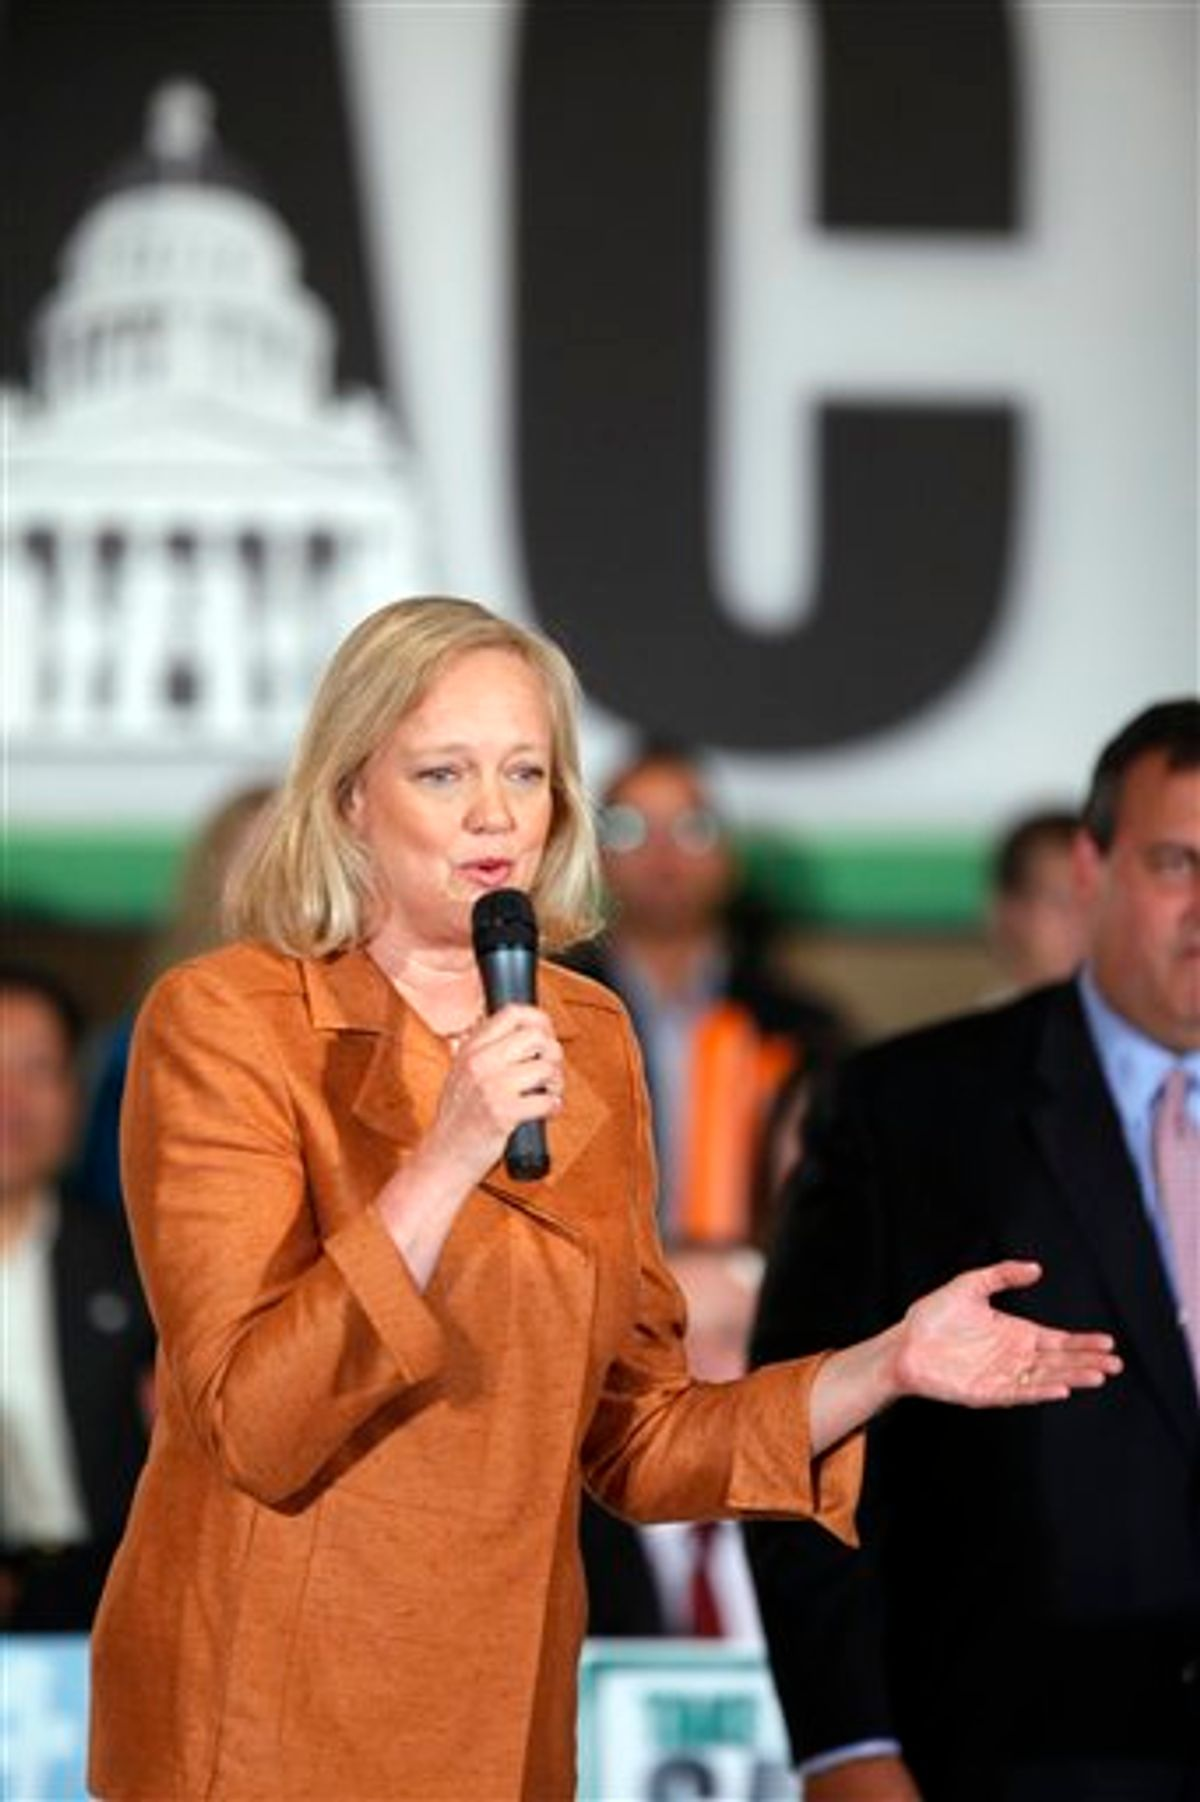 Meg Whitman, Republican nominee for Governor, holds a campaign event with New Jersey Governor Chris Christie, right, on Wednesday, Sept. 22, 2010, in Los Angeles. (AP Photo/Damian Dovarganes)    (AP)